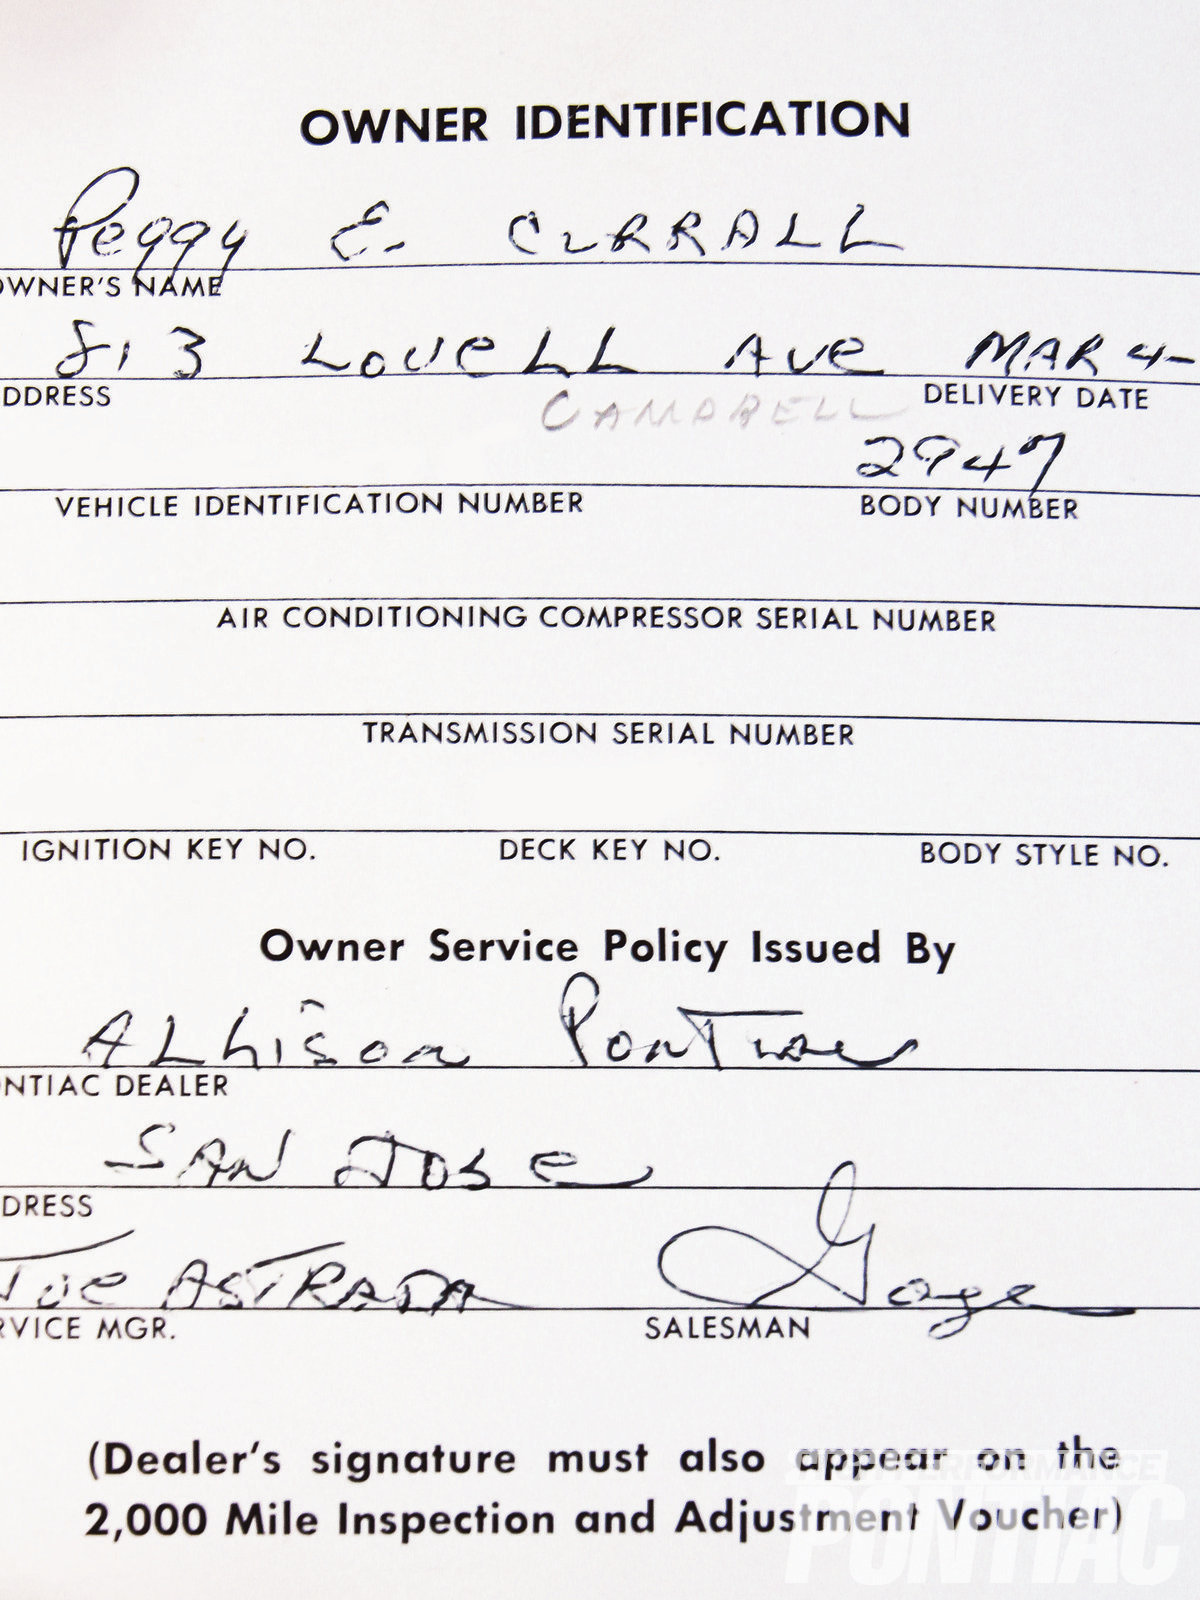 Joe's '62 Grand Prix came with a full array of original paperwork, including this warranty card, which was to be presented at the dealer when the car came in for service. It shows the original owner's name and information written in.